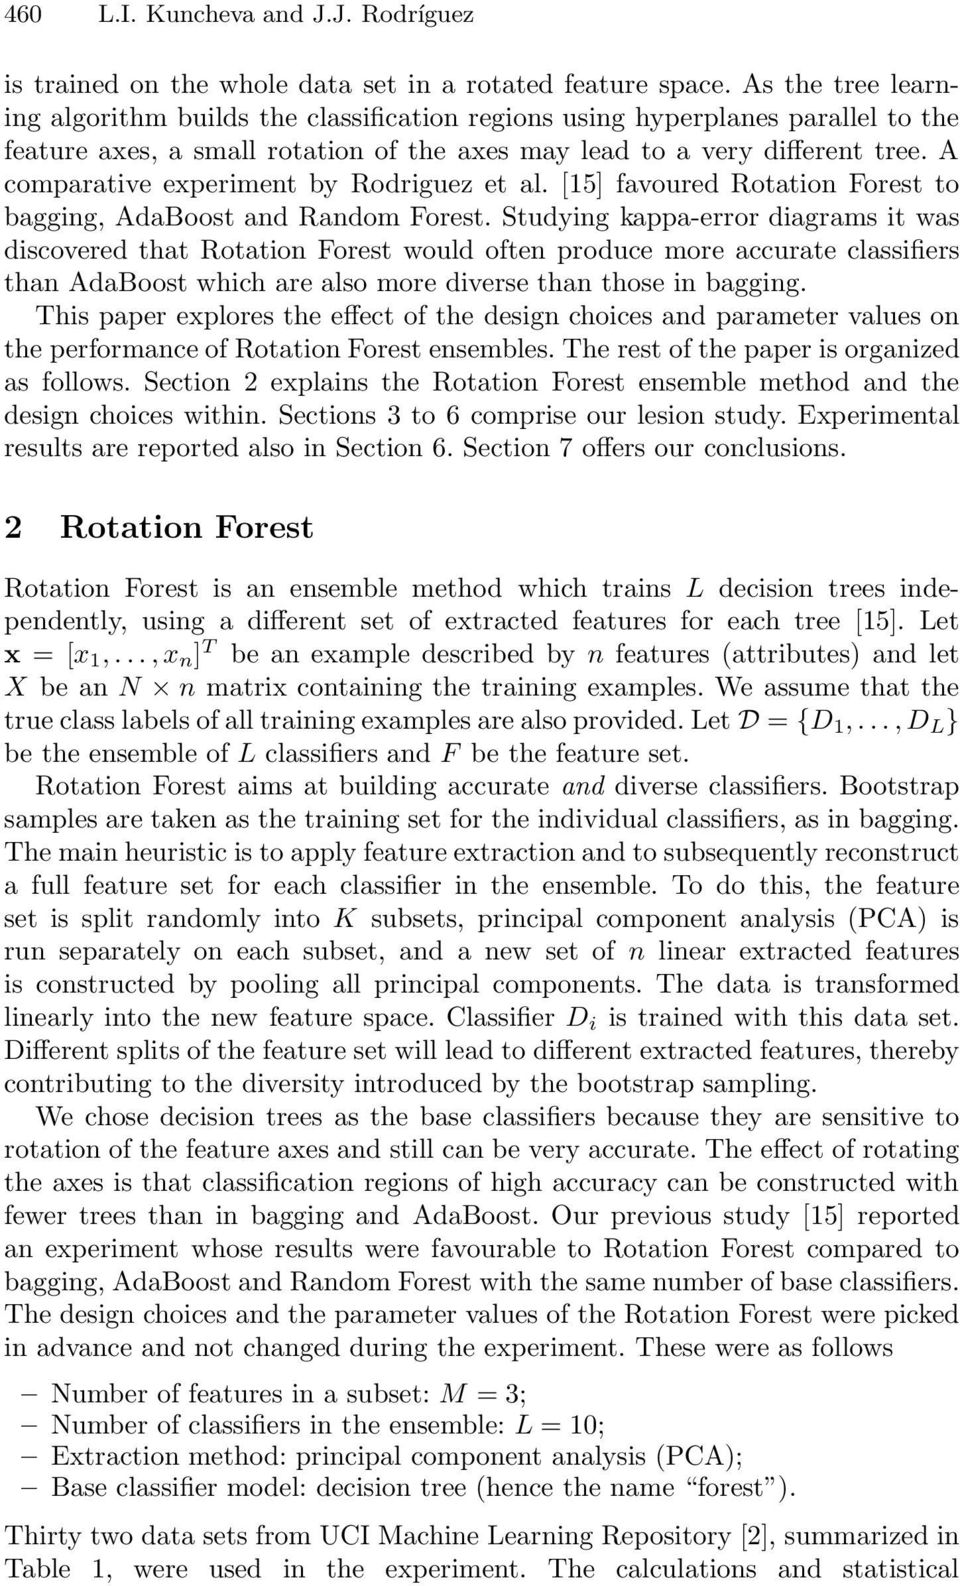 A comparative experiment by Rodriguez et al. [15] favoured Rotation Forest to bagging, AdaBoost and Random Forest.